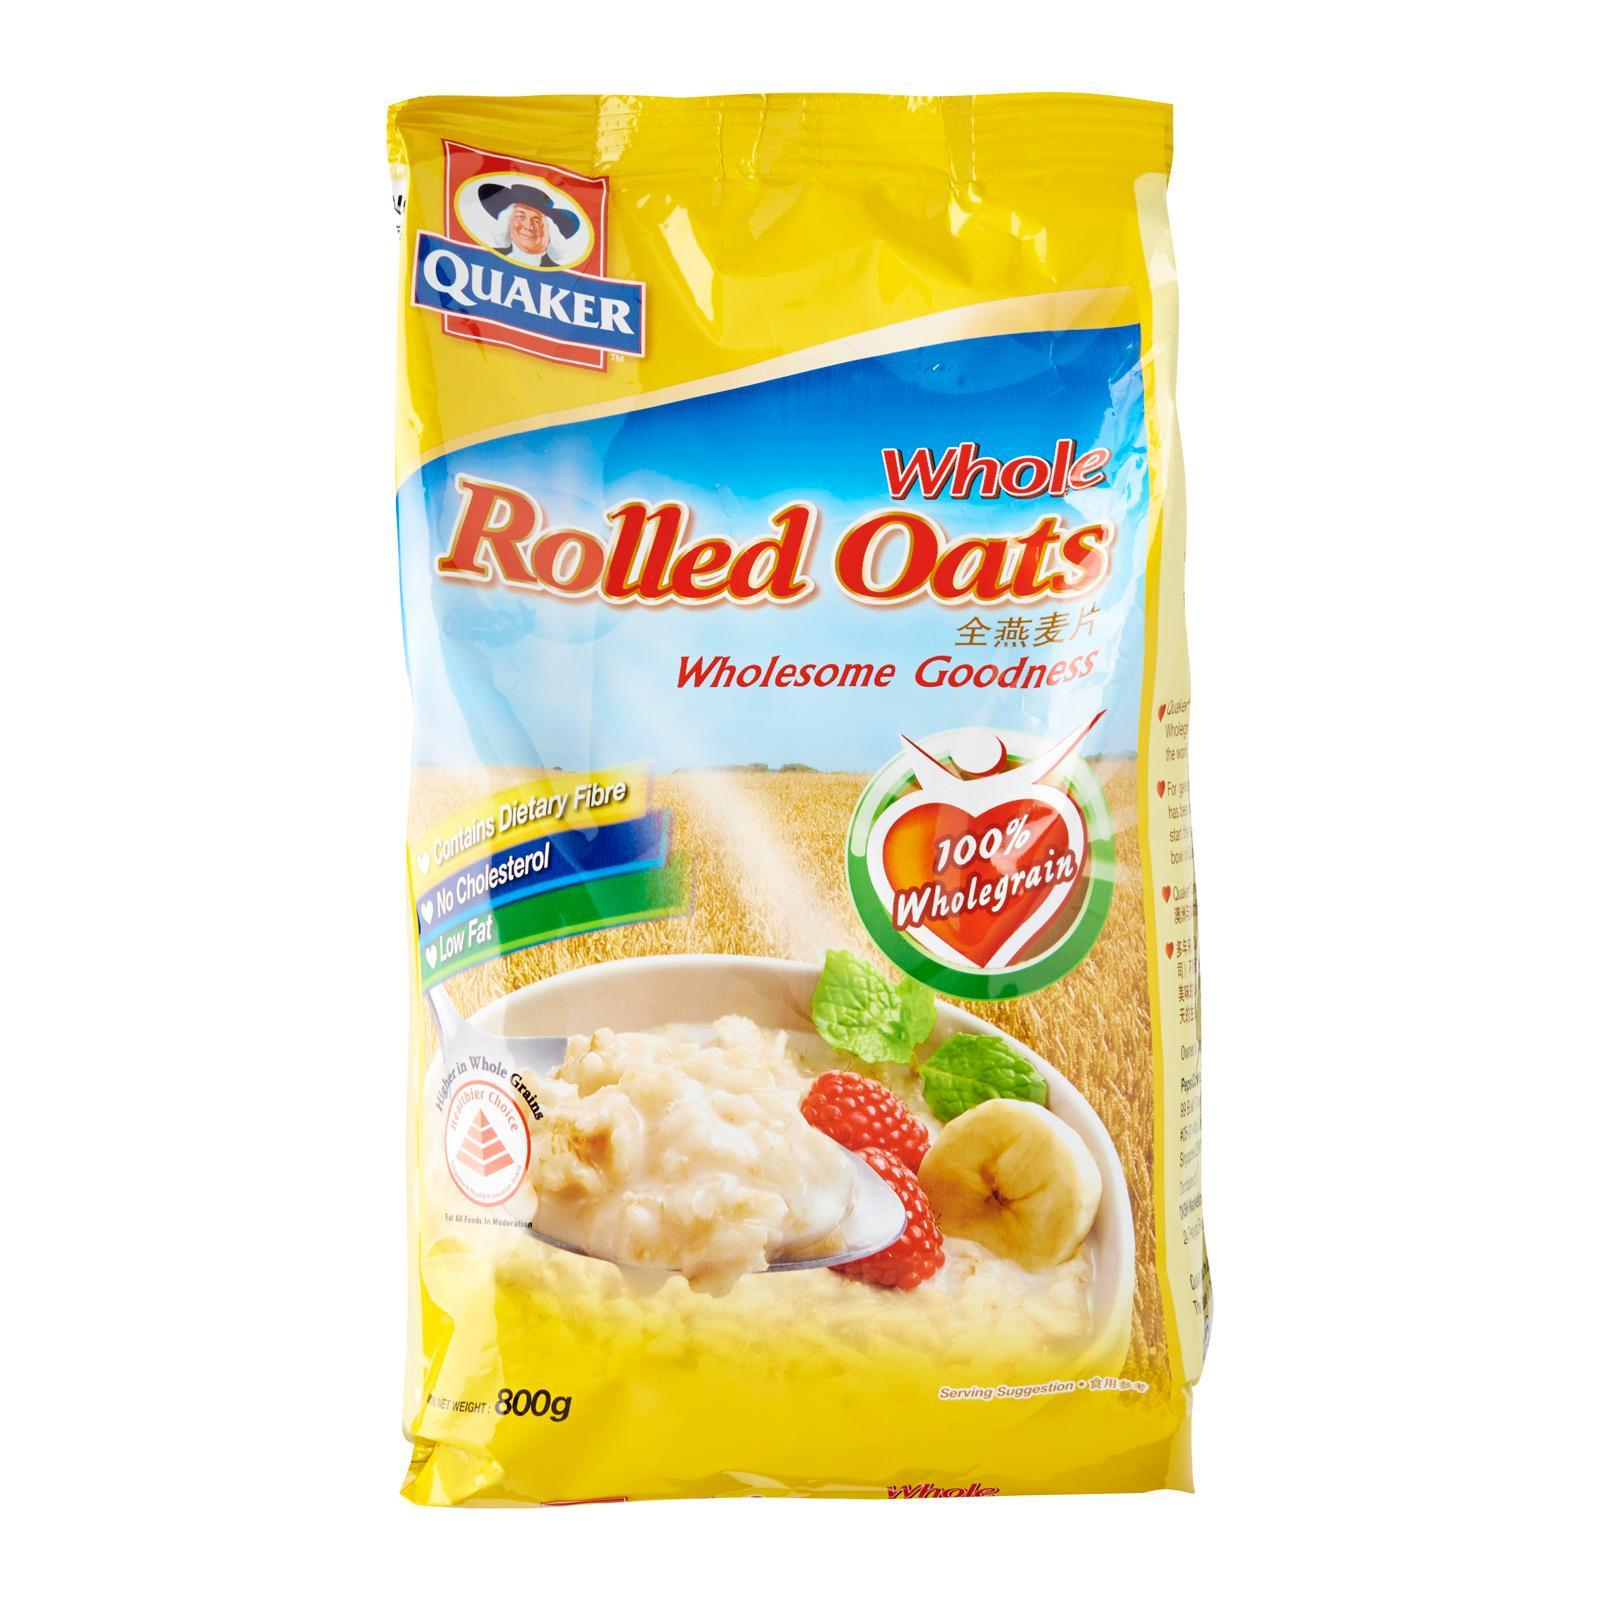 Quaker Whole Rolled Oats